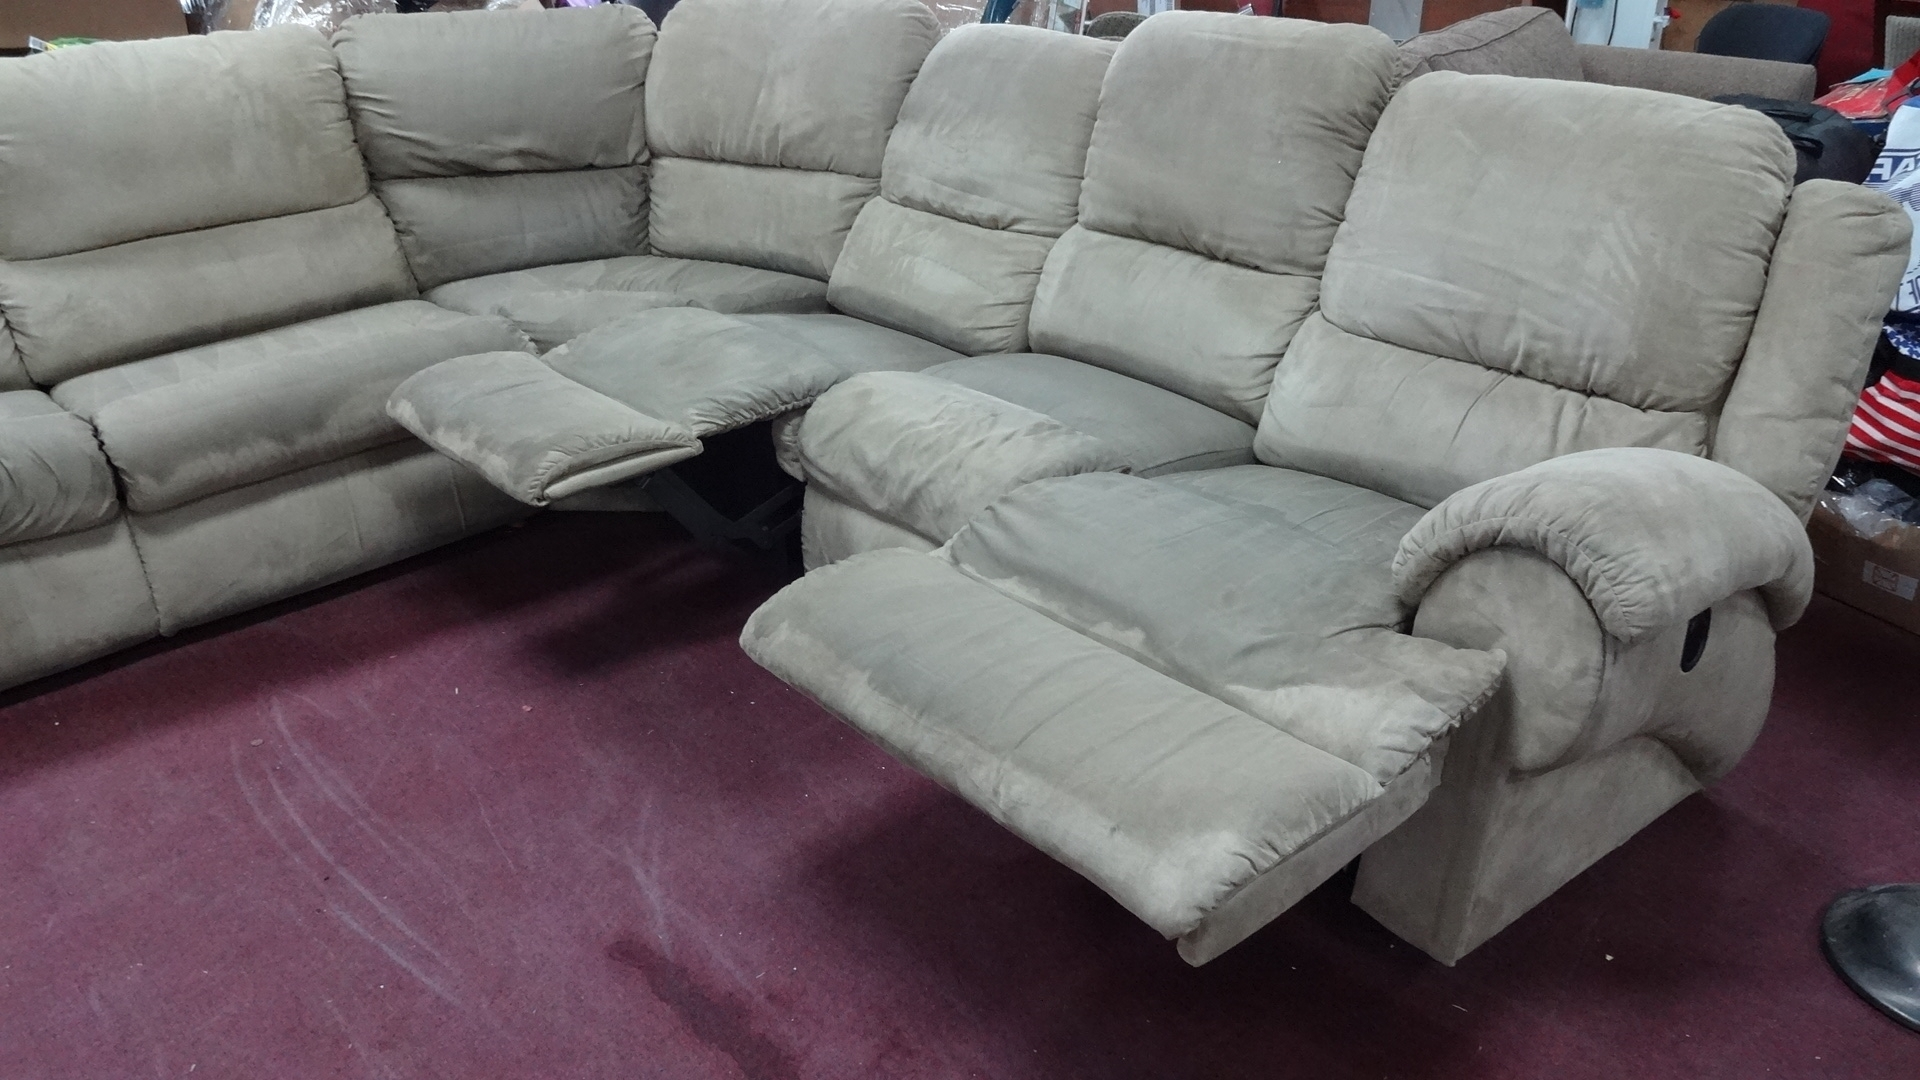 Sectional Sofas At The Brick Throughout Popular La Z Boy Sectional Sofa Bed • Sofa Bed (View 17 of 20)